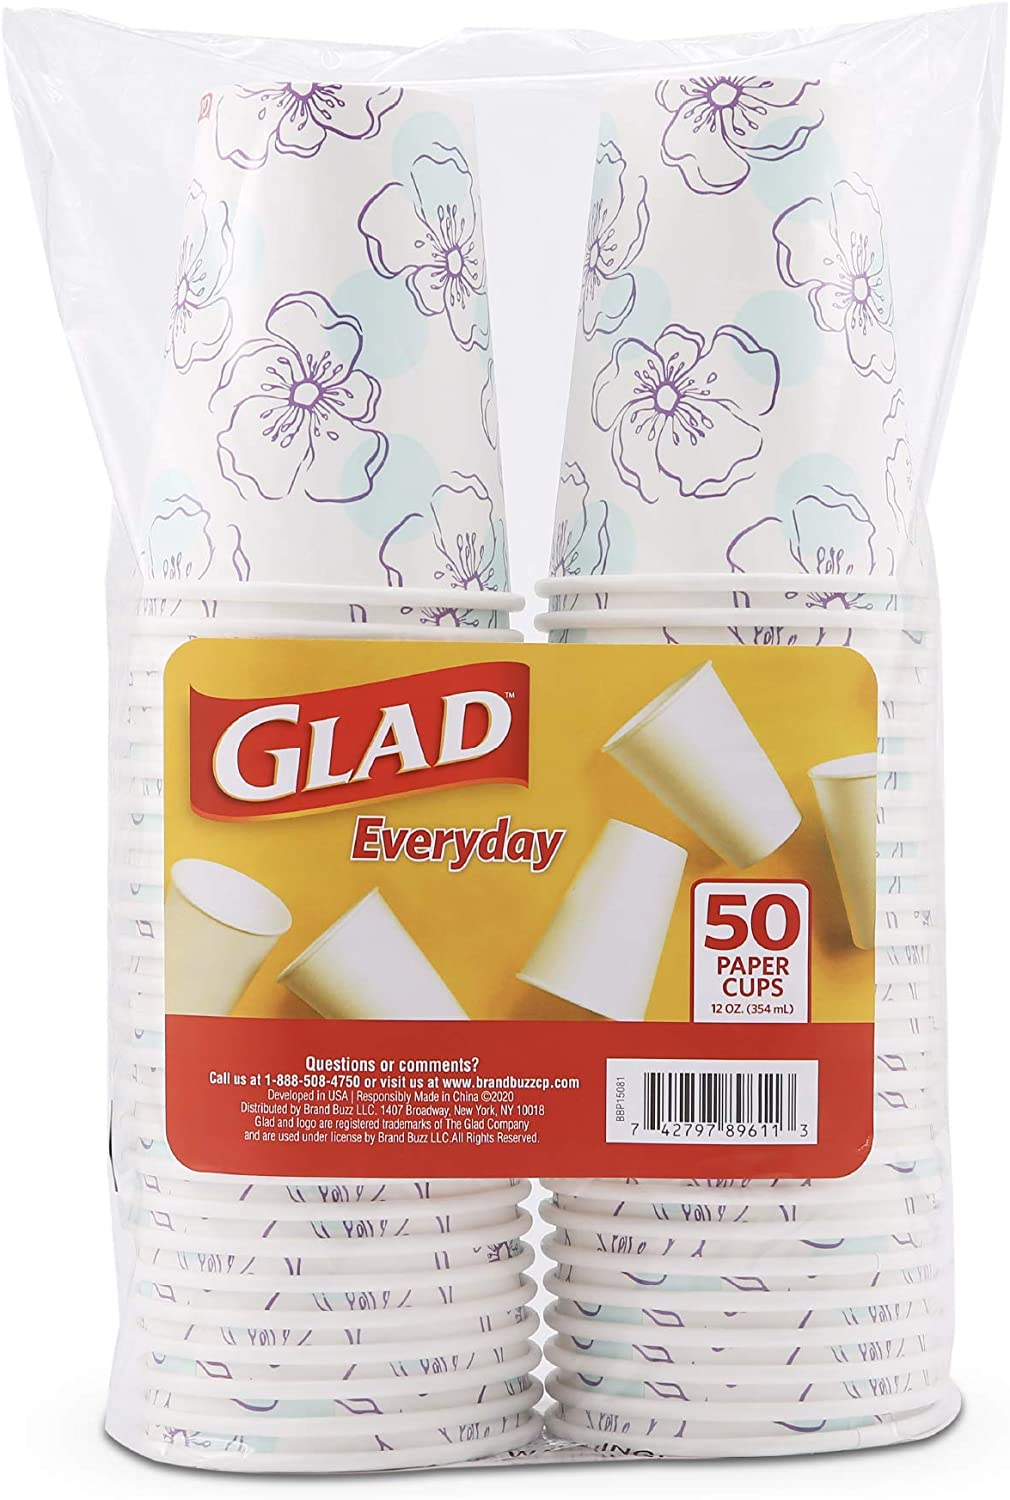 Glad Tabletop Disposable Paper Cups with Purple Flower Design, 12 Ounces, 50 Count